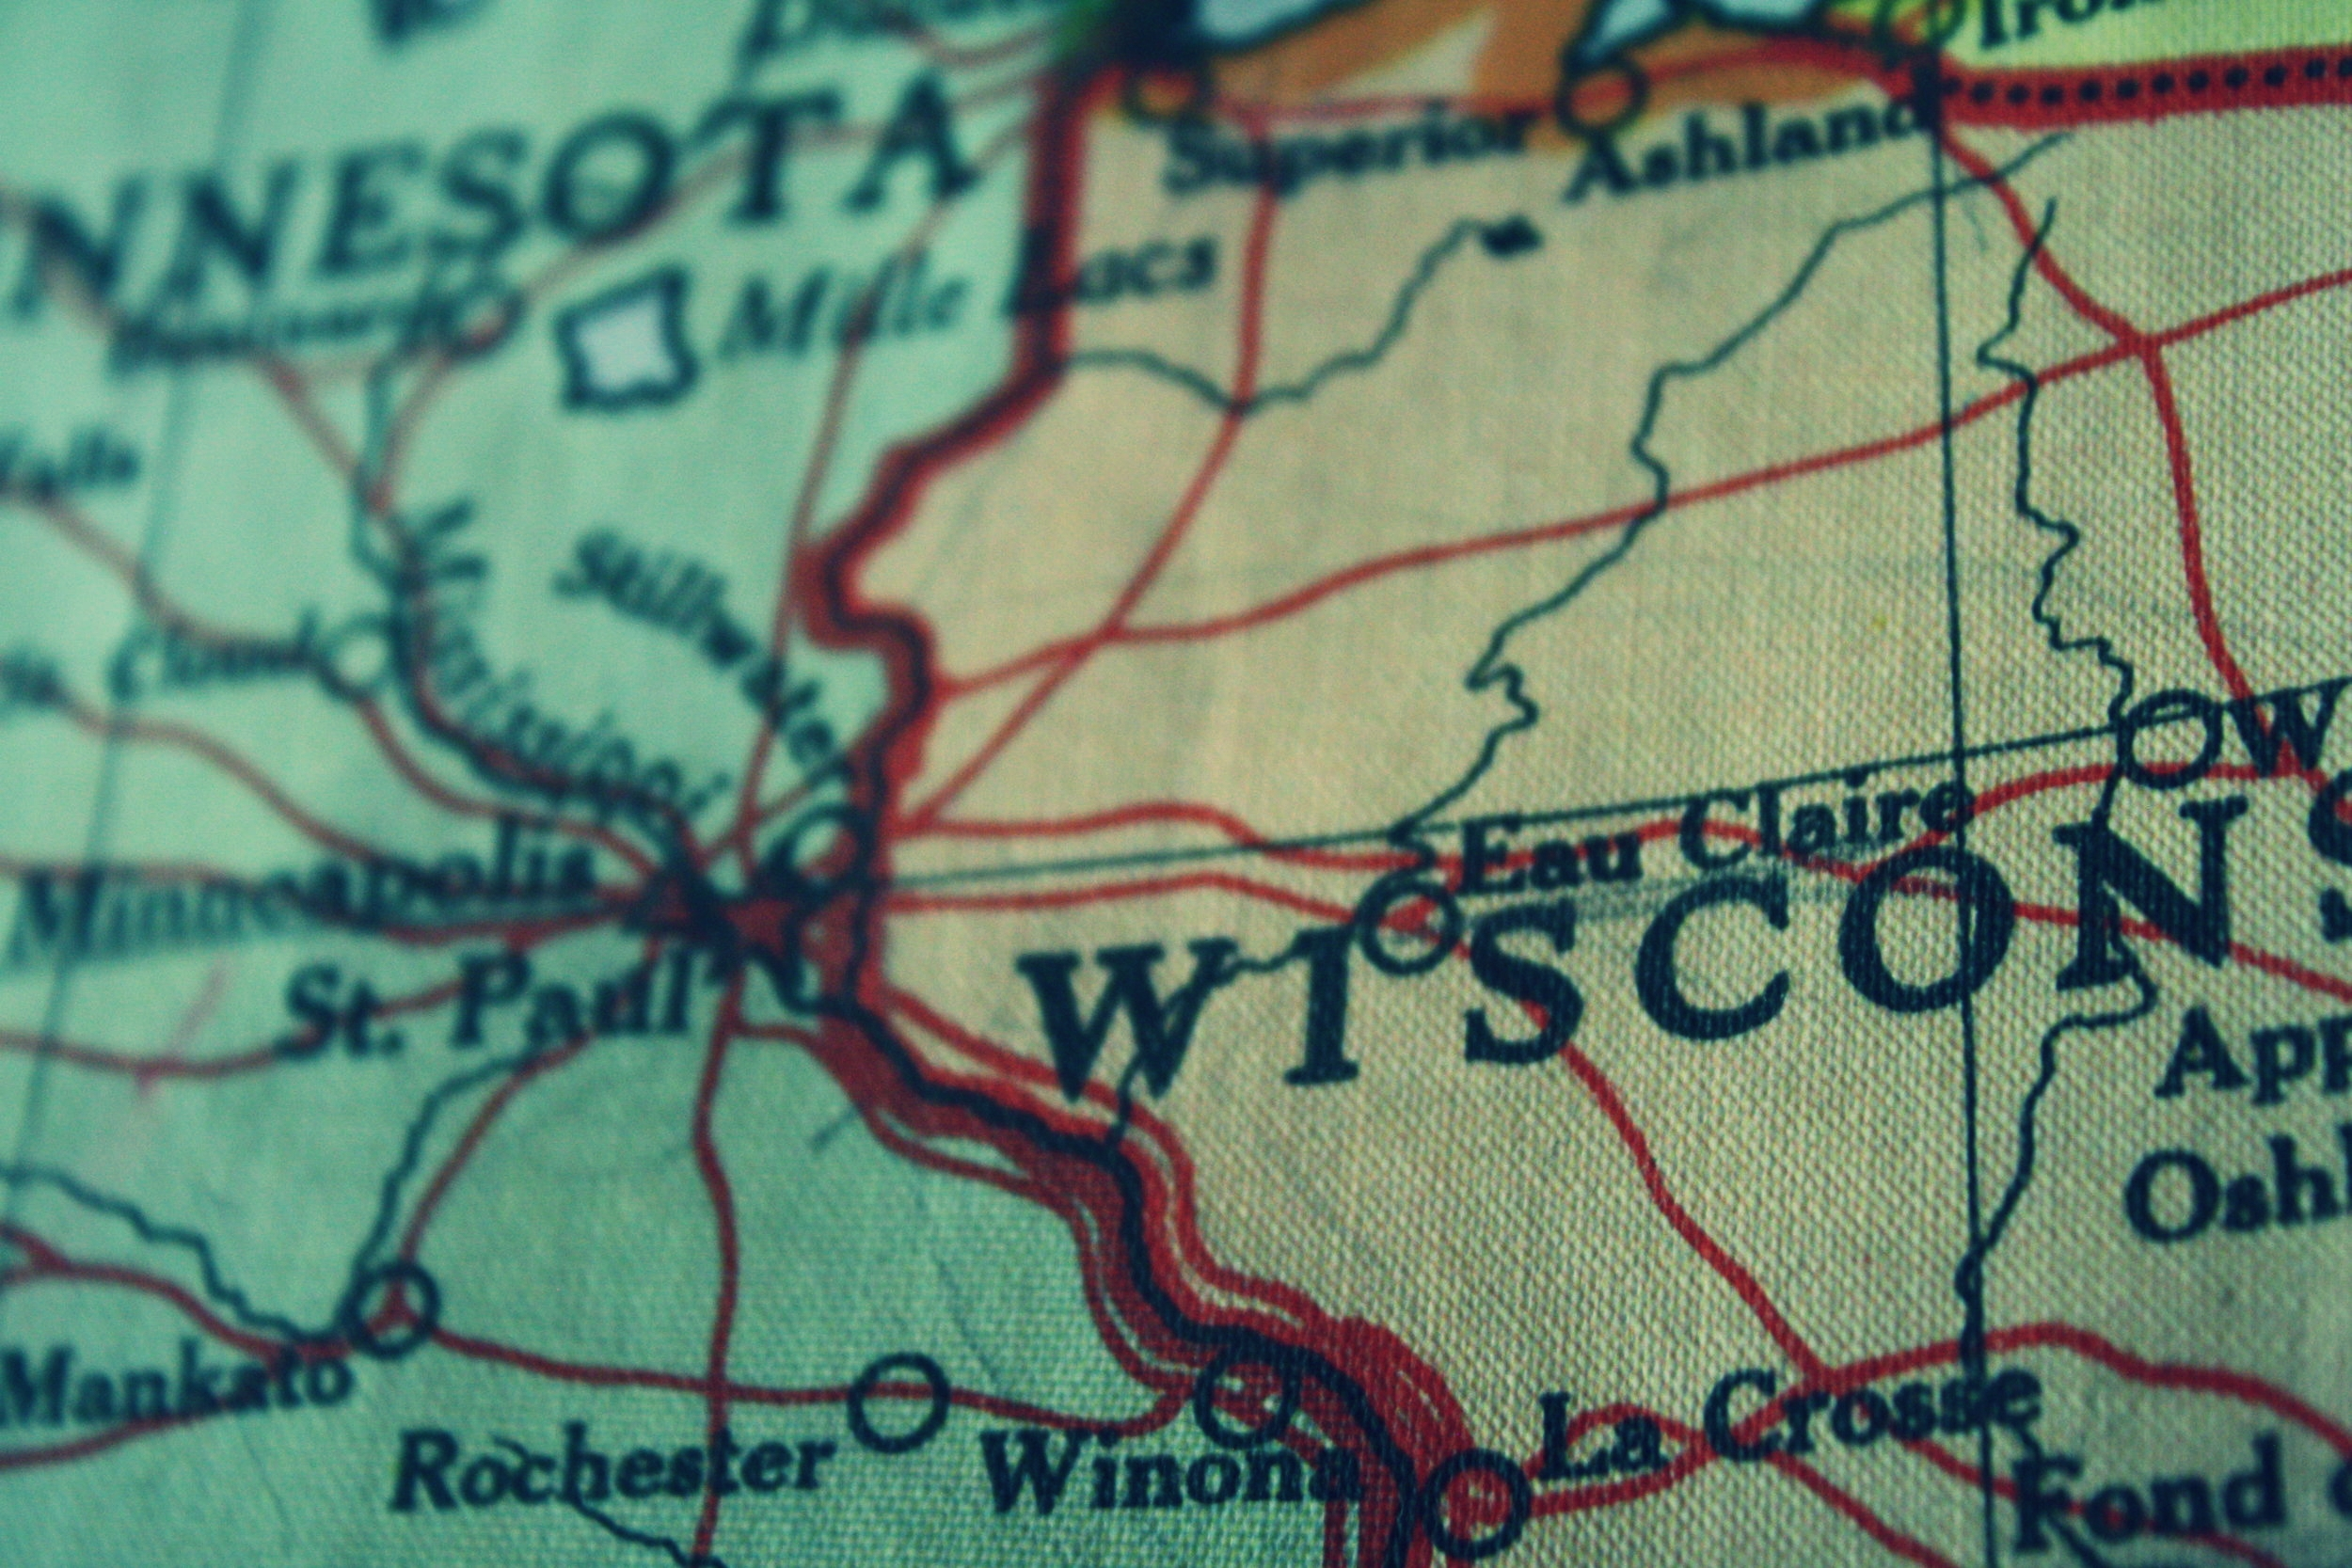 CONTACT - Located in Menomonie, Wisconsin, Home Sweet Home Inspections, LLC serves clients in western Wisconsin and eastern Minnesota.